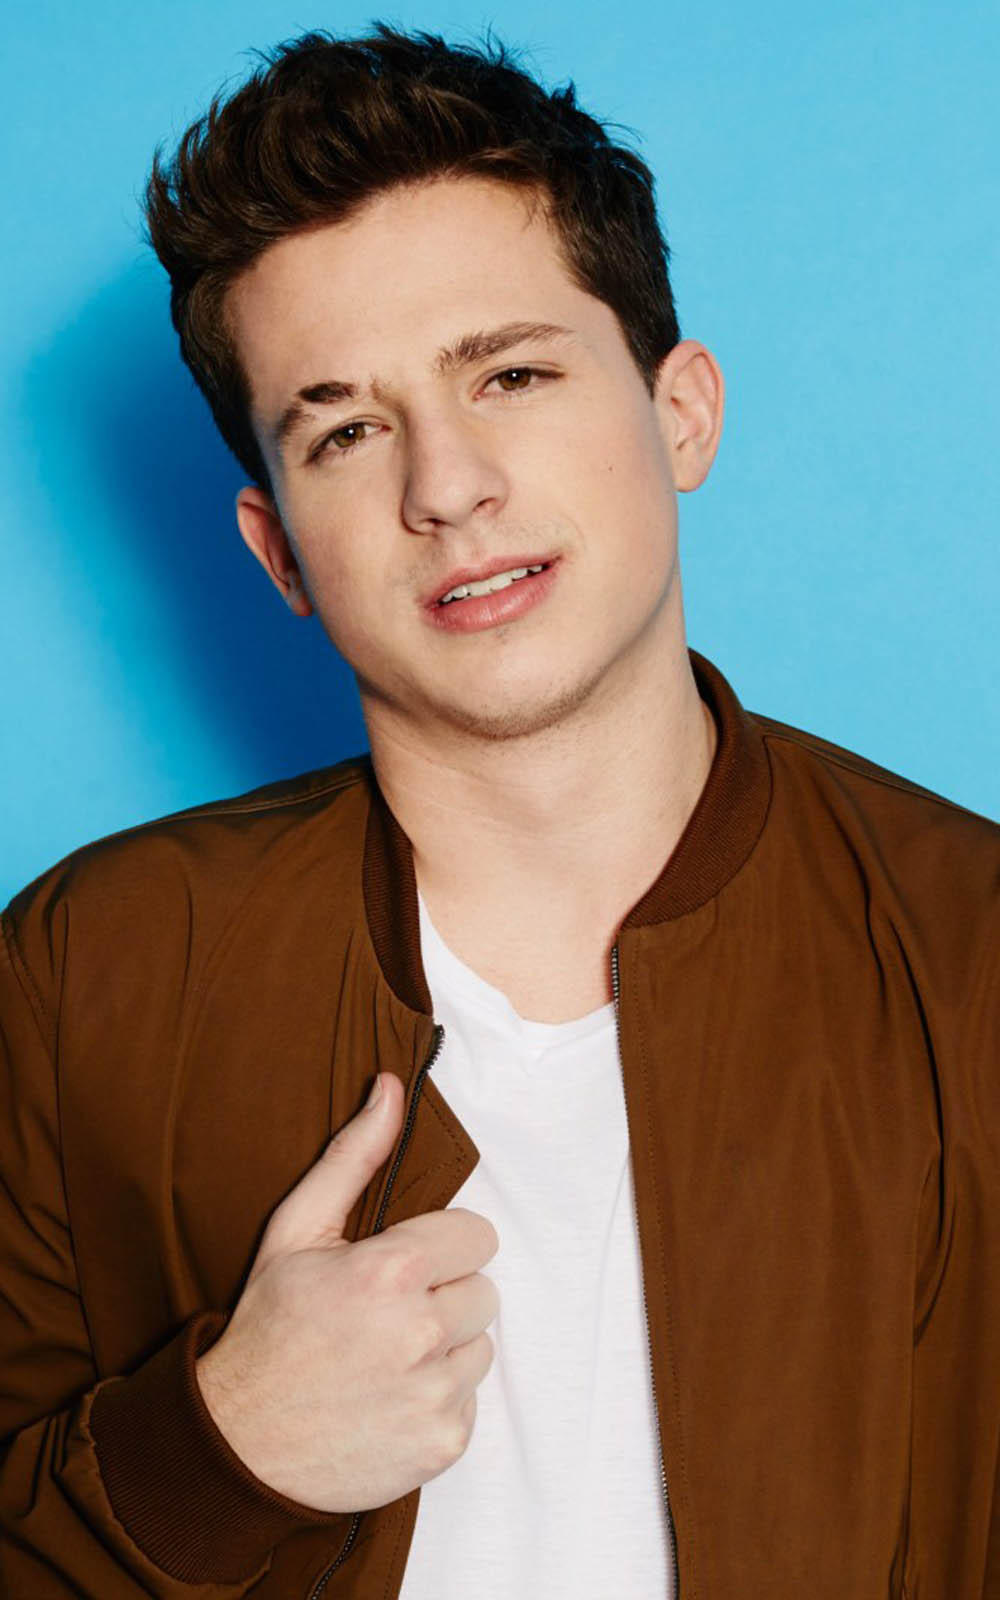 Cute Love Quotes Mobile Wallpapers Charlie Puth 2017 Download Free Pure 4k Ultra Hd Mobile